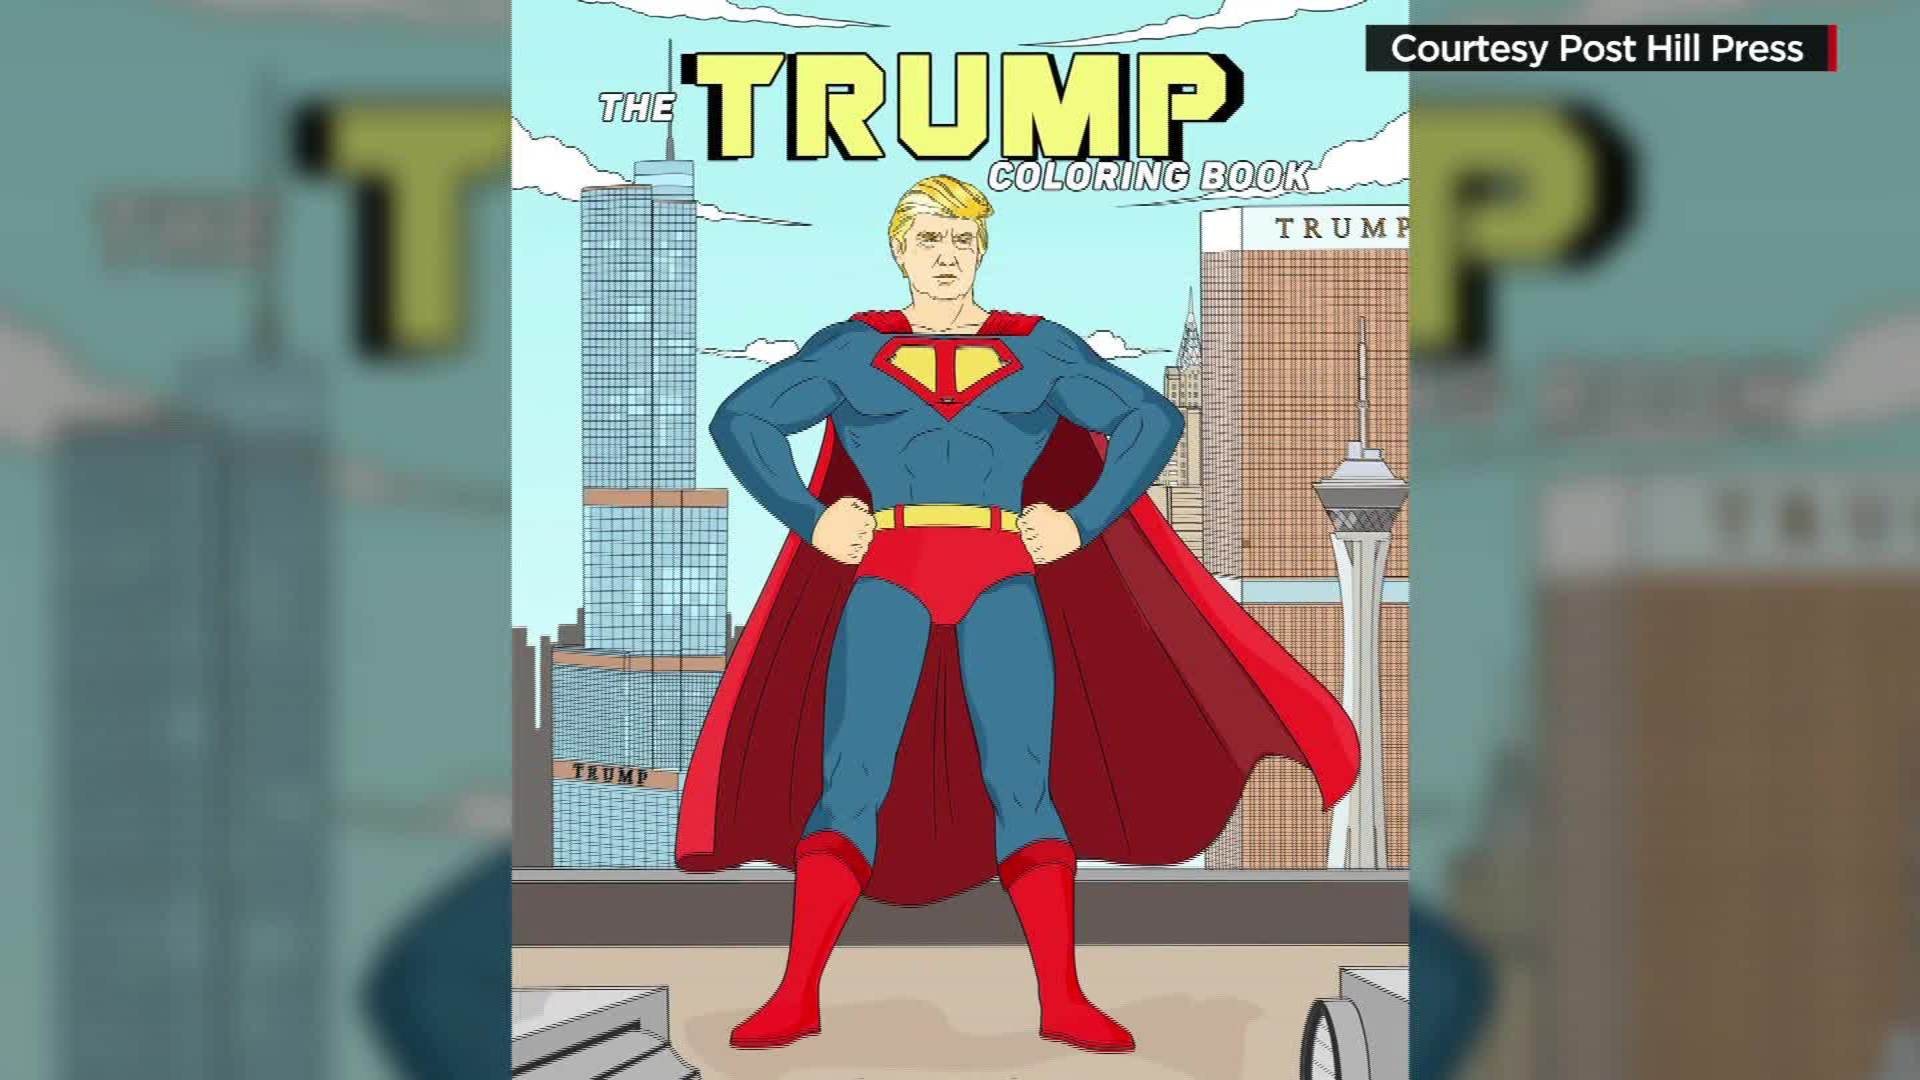 Donald Trump Gets His Own Coloring Book